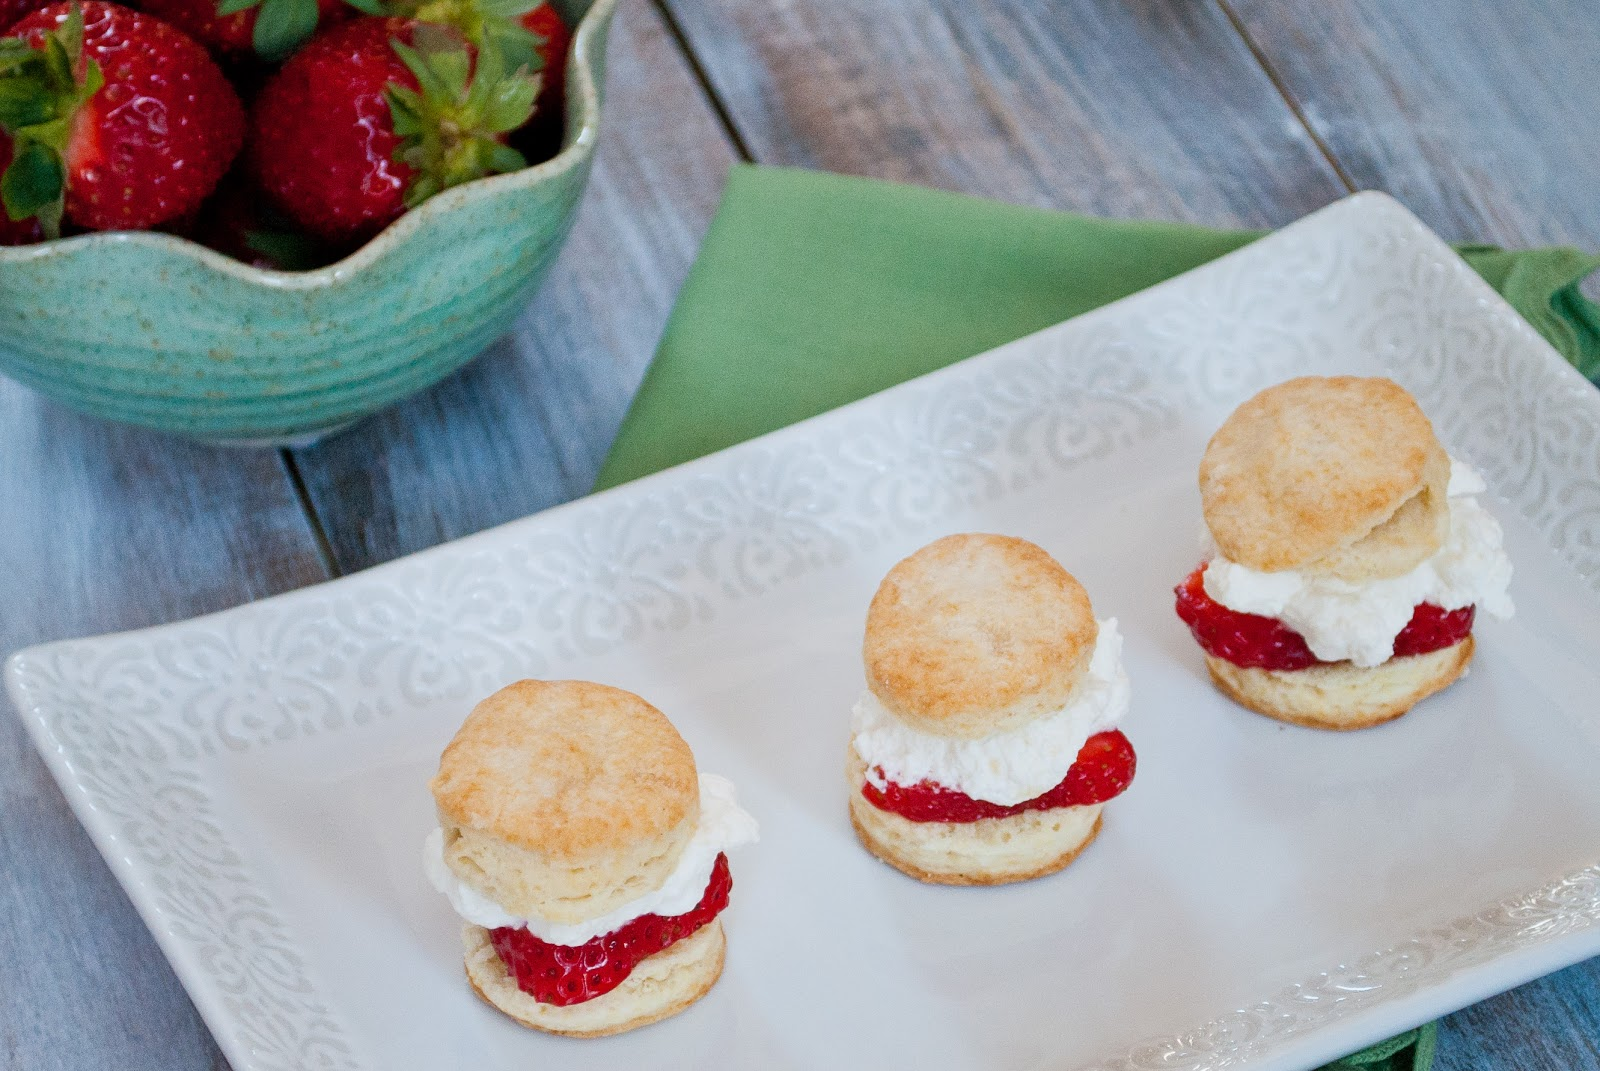 These Strawberry Shortcake Sliders from Ryan of Ryan Bakes are so ...